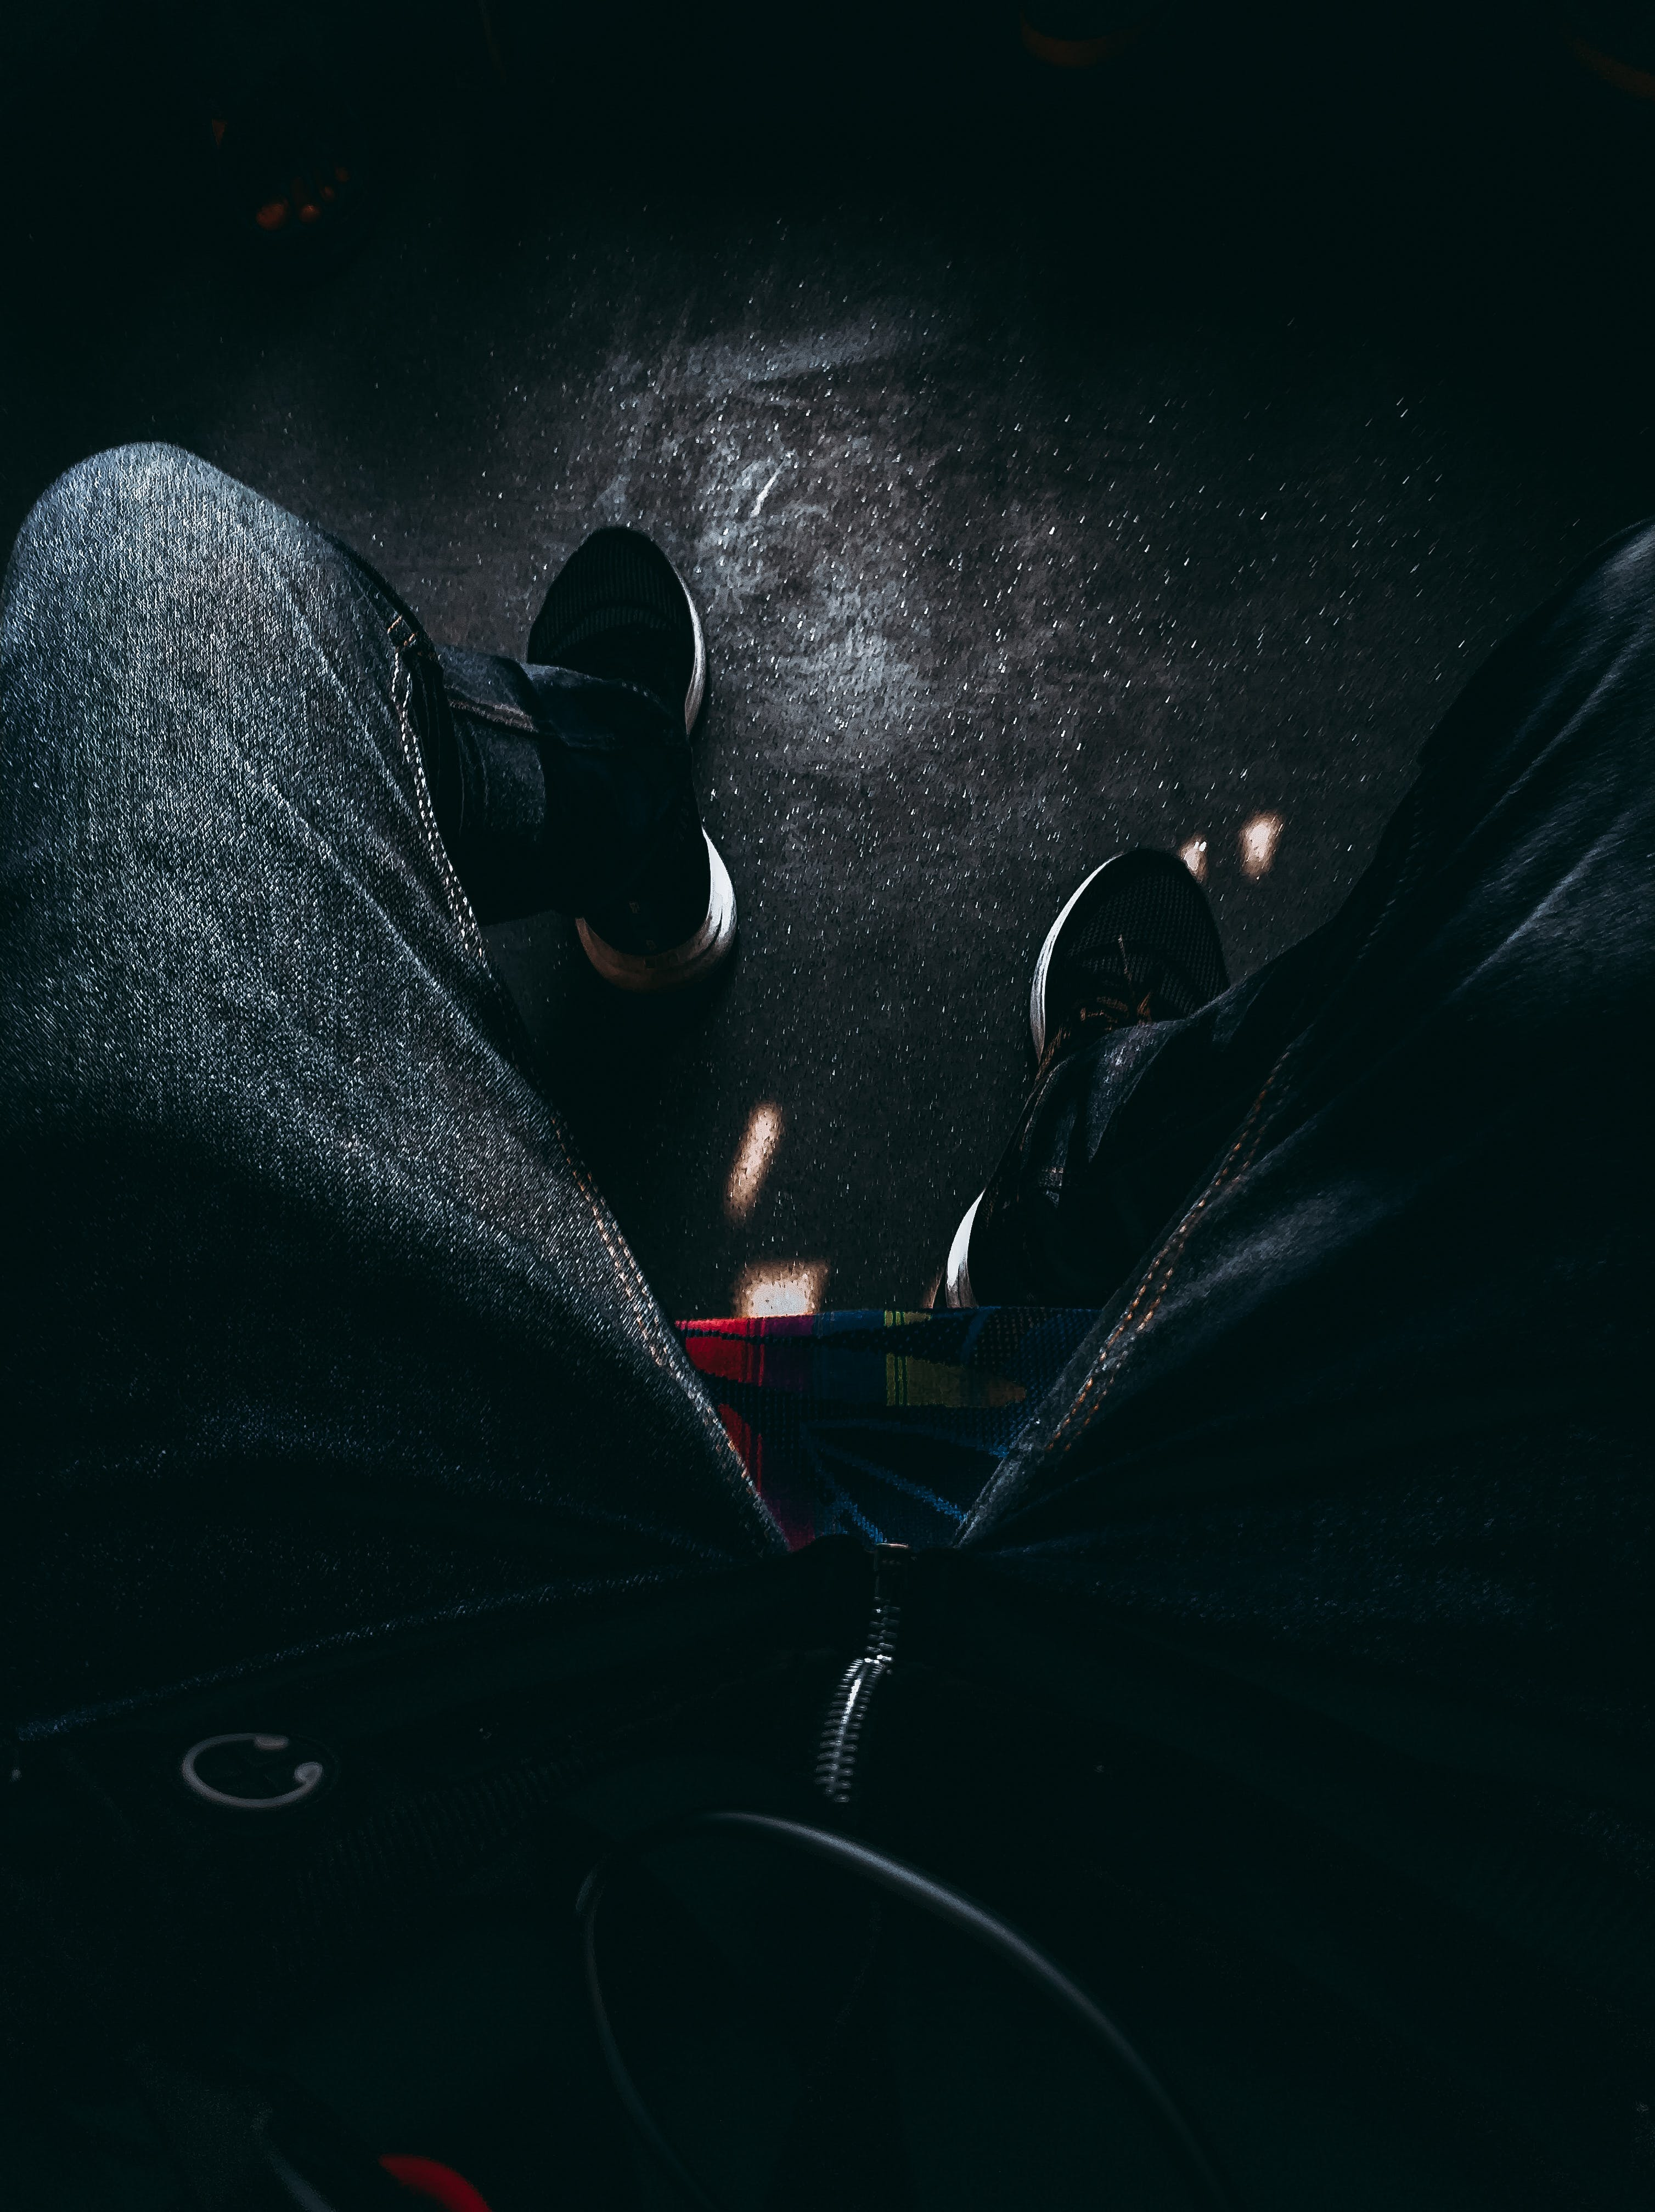 Person in Black Jeans and Shoes